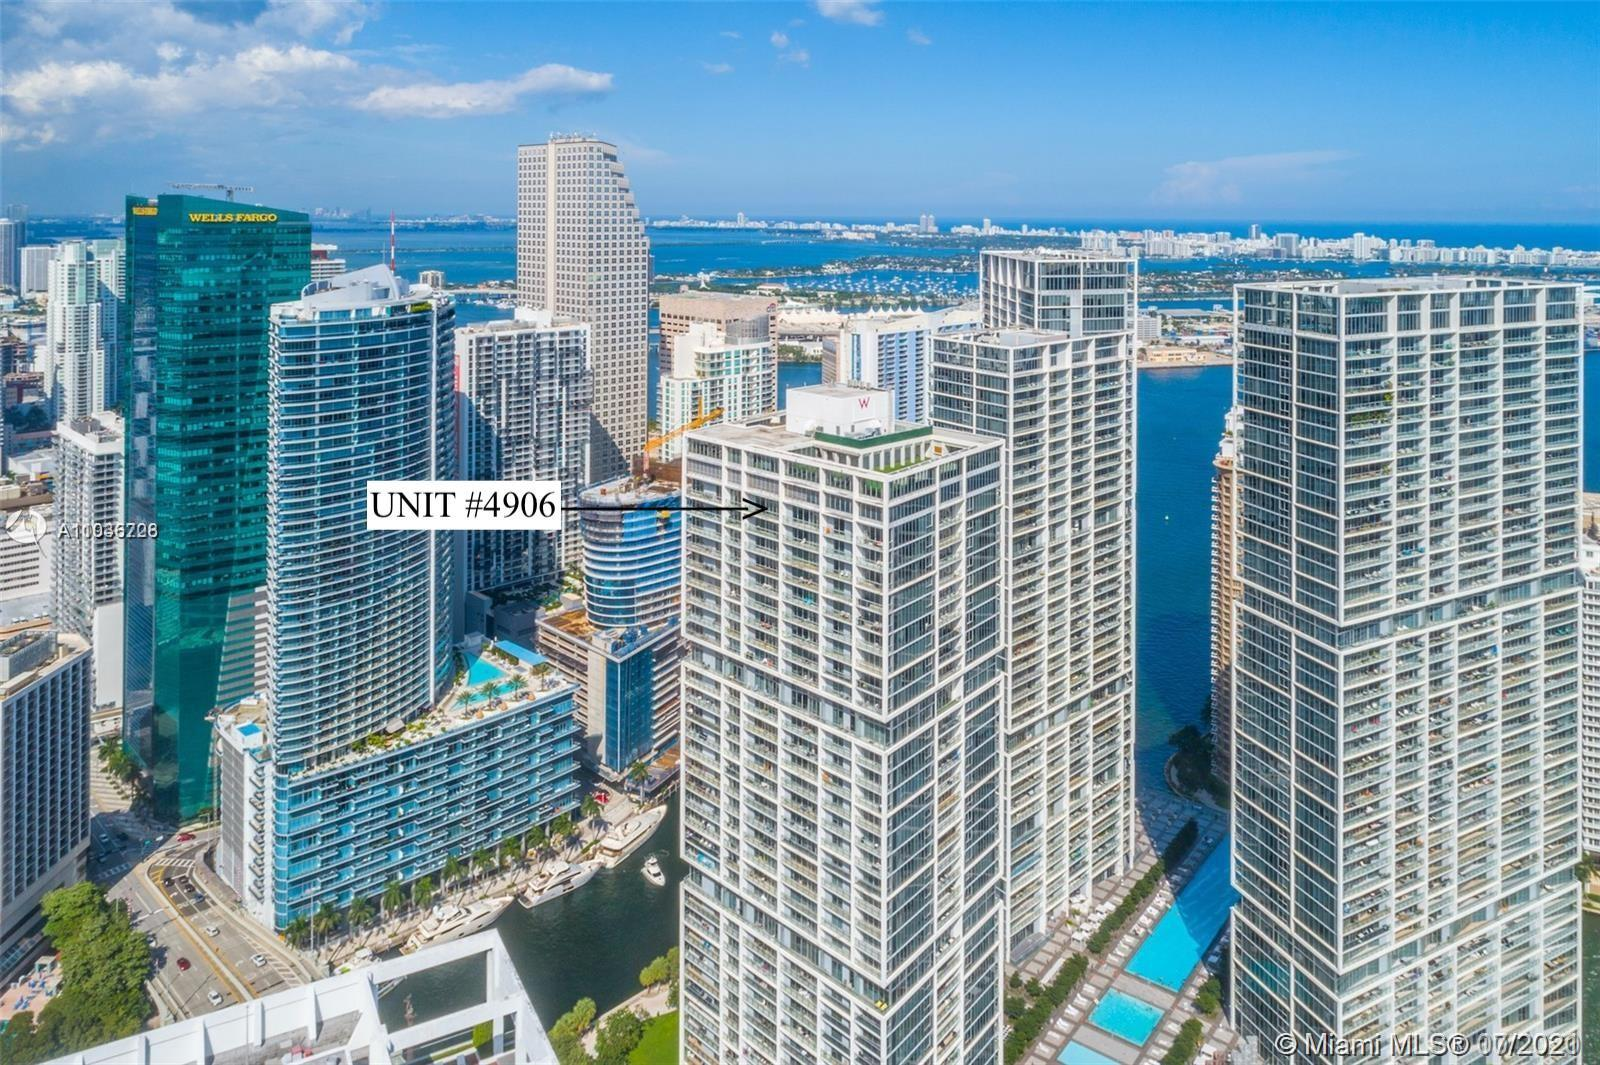 PENTHOUSE 49th Floor 1 Bedroom 1 Bath * AIRBNB/Short-Term Rental Allowed * 842 sqft Unit. Can be Sold AS IS fully furnished for an additional $5,000.